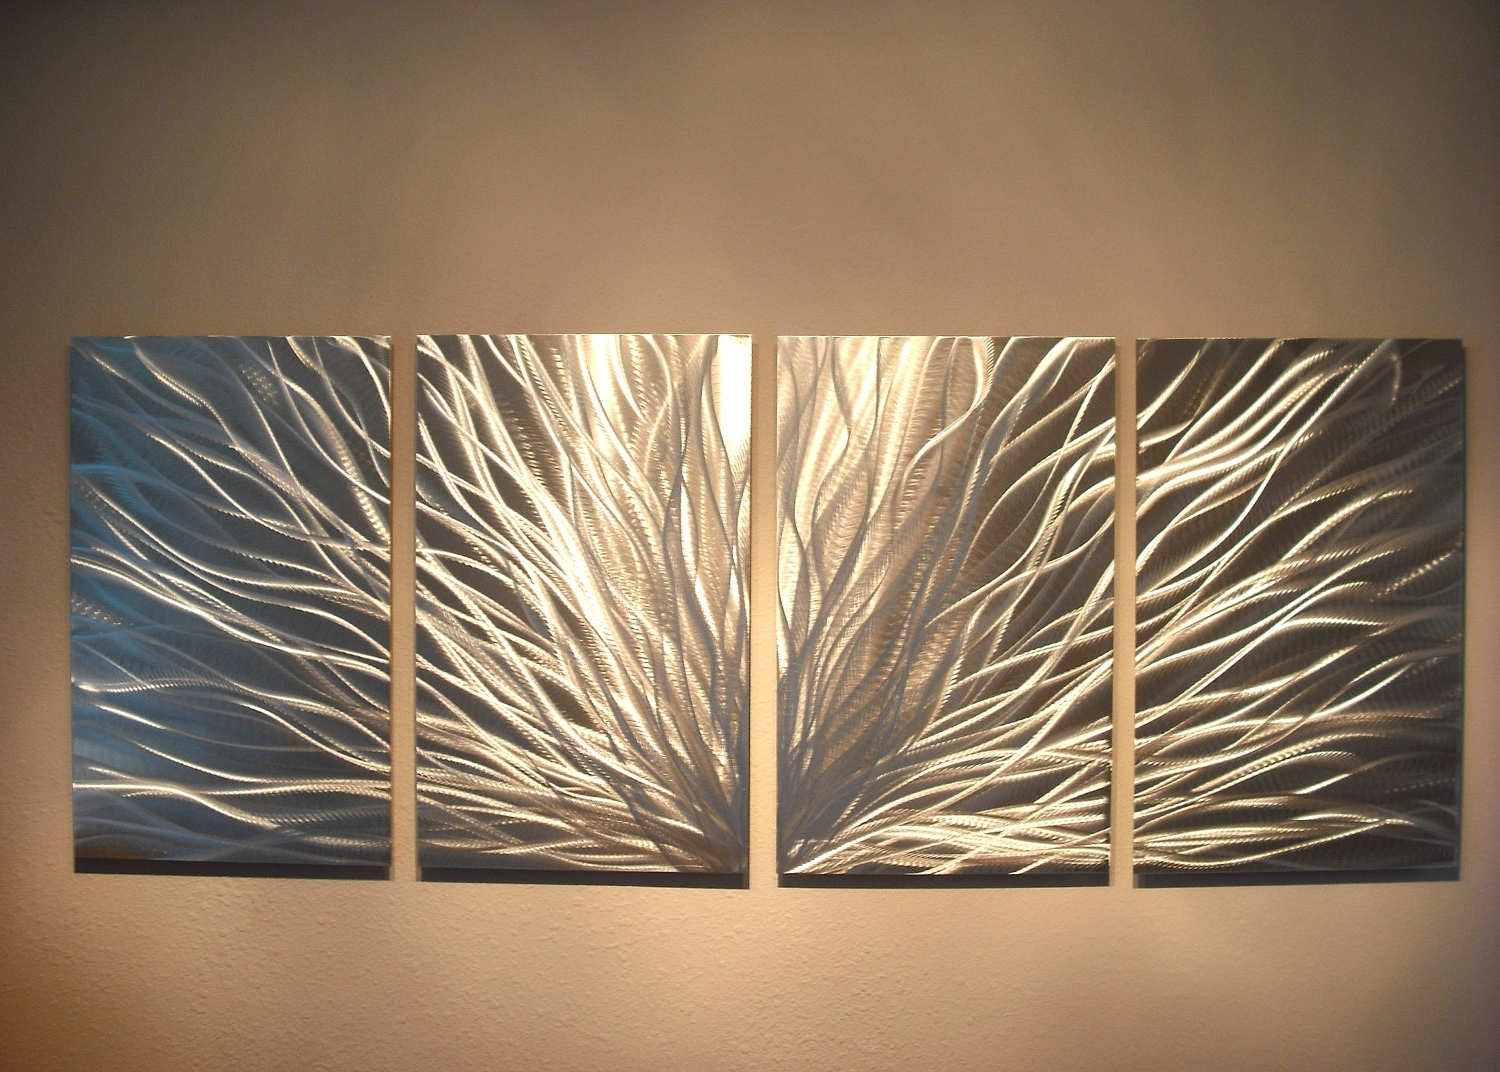 Radiance – Abstract Metal Wall Art Contemporary Modern Decor Within Fashionable Large Metal Wall Art Sculptures (View 3 of 15)